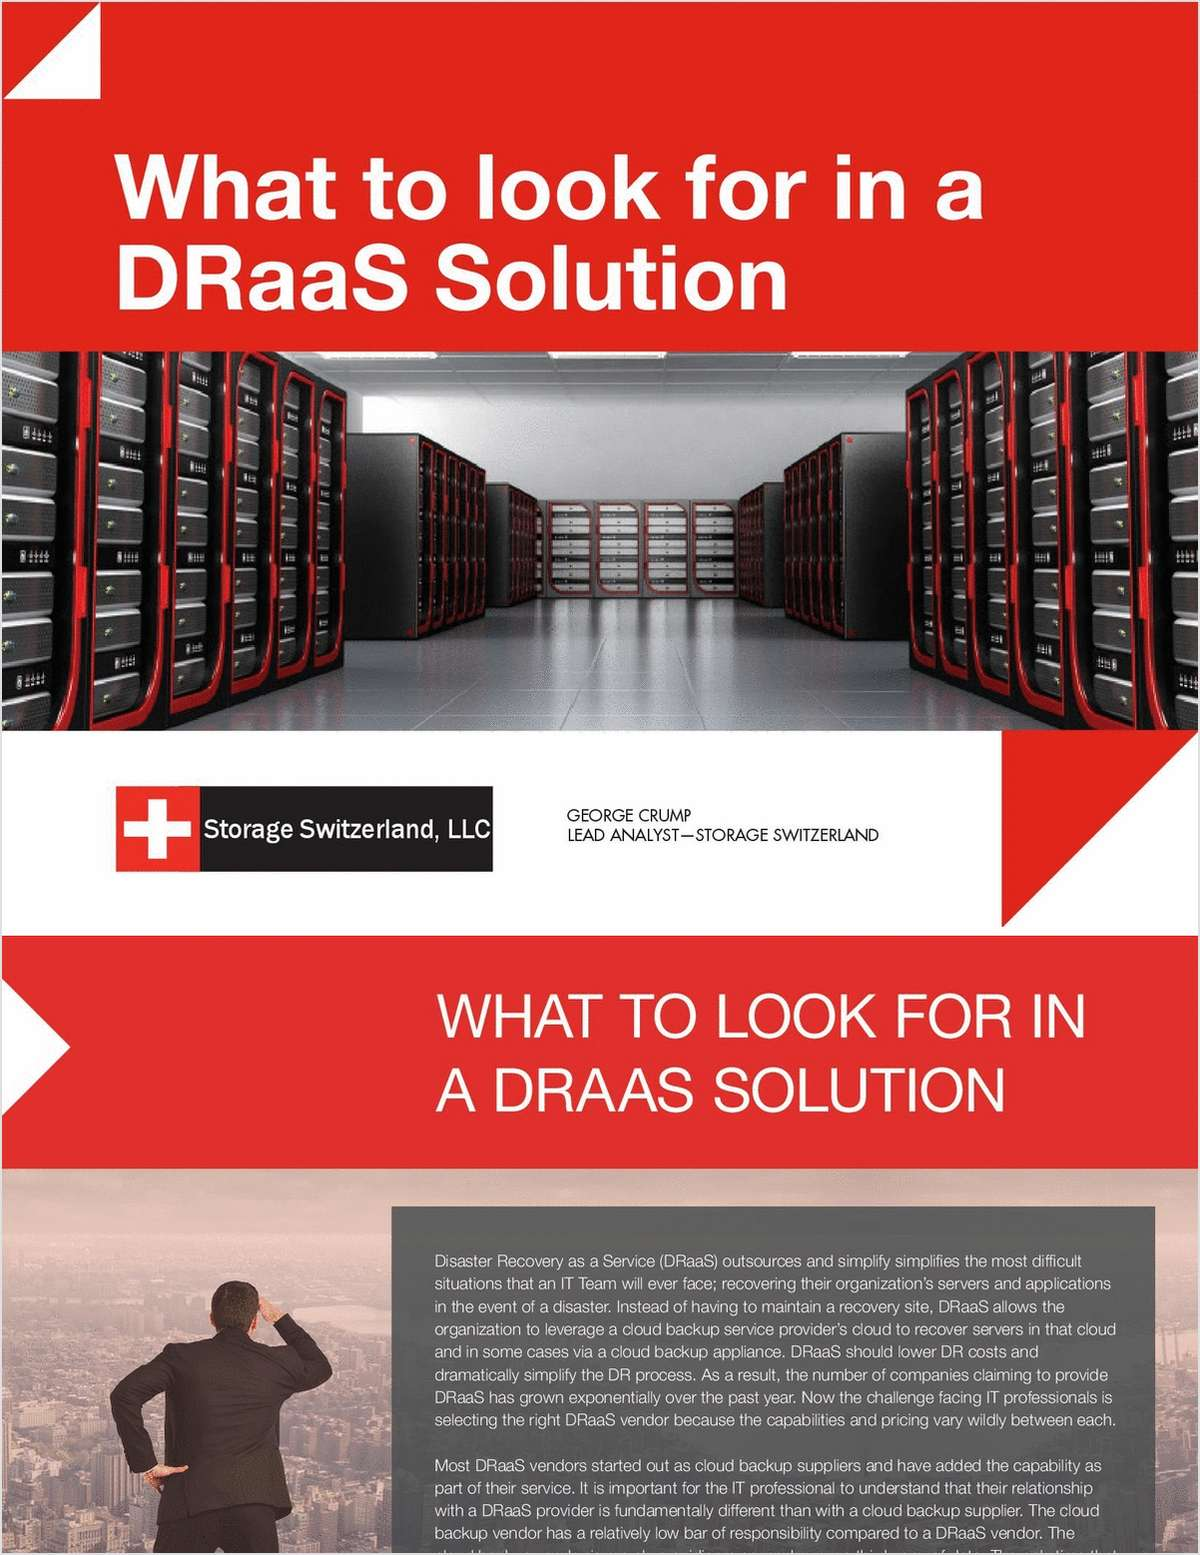 What to Look for in a DRaaS Solution